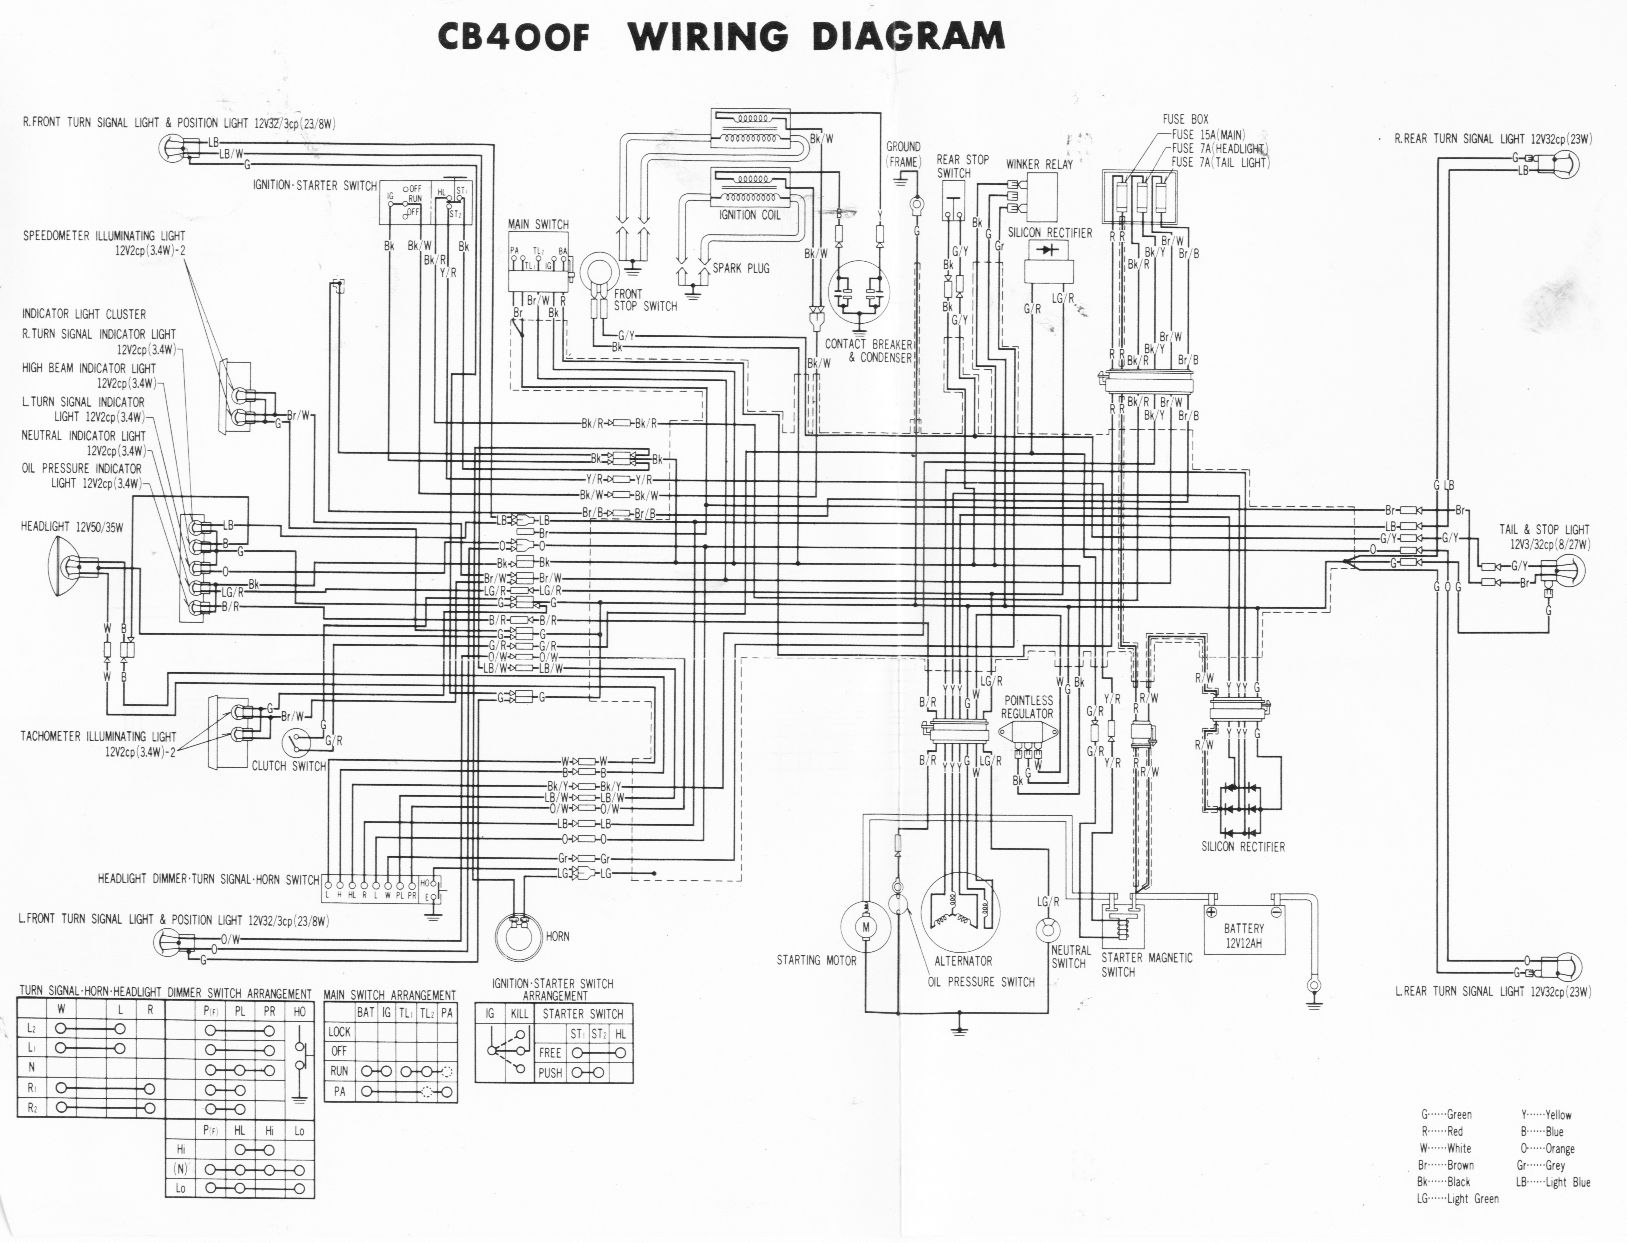 WD40075 cb400f cb550 wiring diagram at readyjetset.co